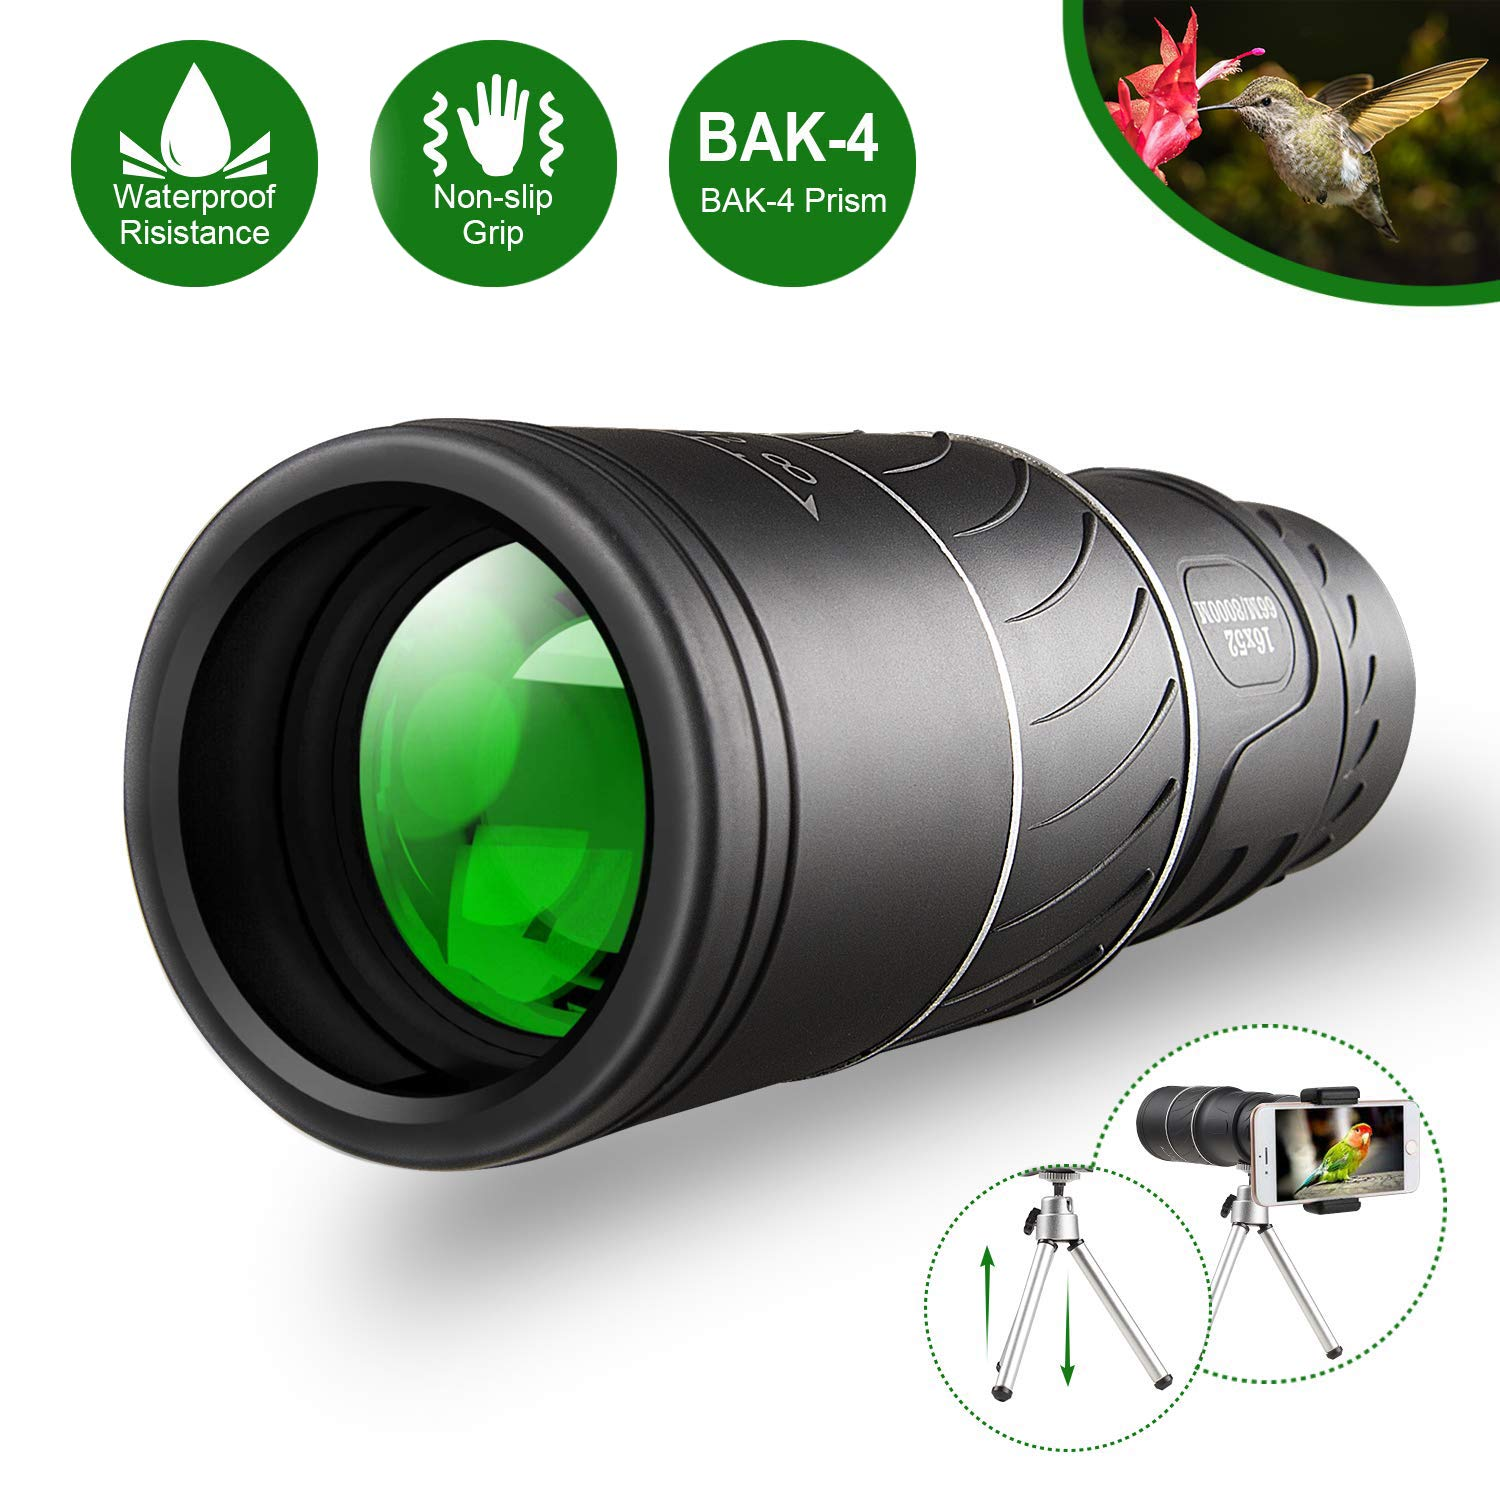 Monocular Telescope,16x52 Monocular Dual Focus Optics Zoom Telescope, Day & Low Night Vision- [Upgrade]Waterproof Monocular with Durable and Clear FMC BAK4 Prism Dual Focus for Bird Watching, Camping by Feeke